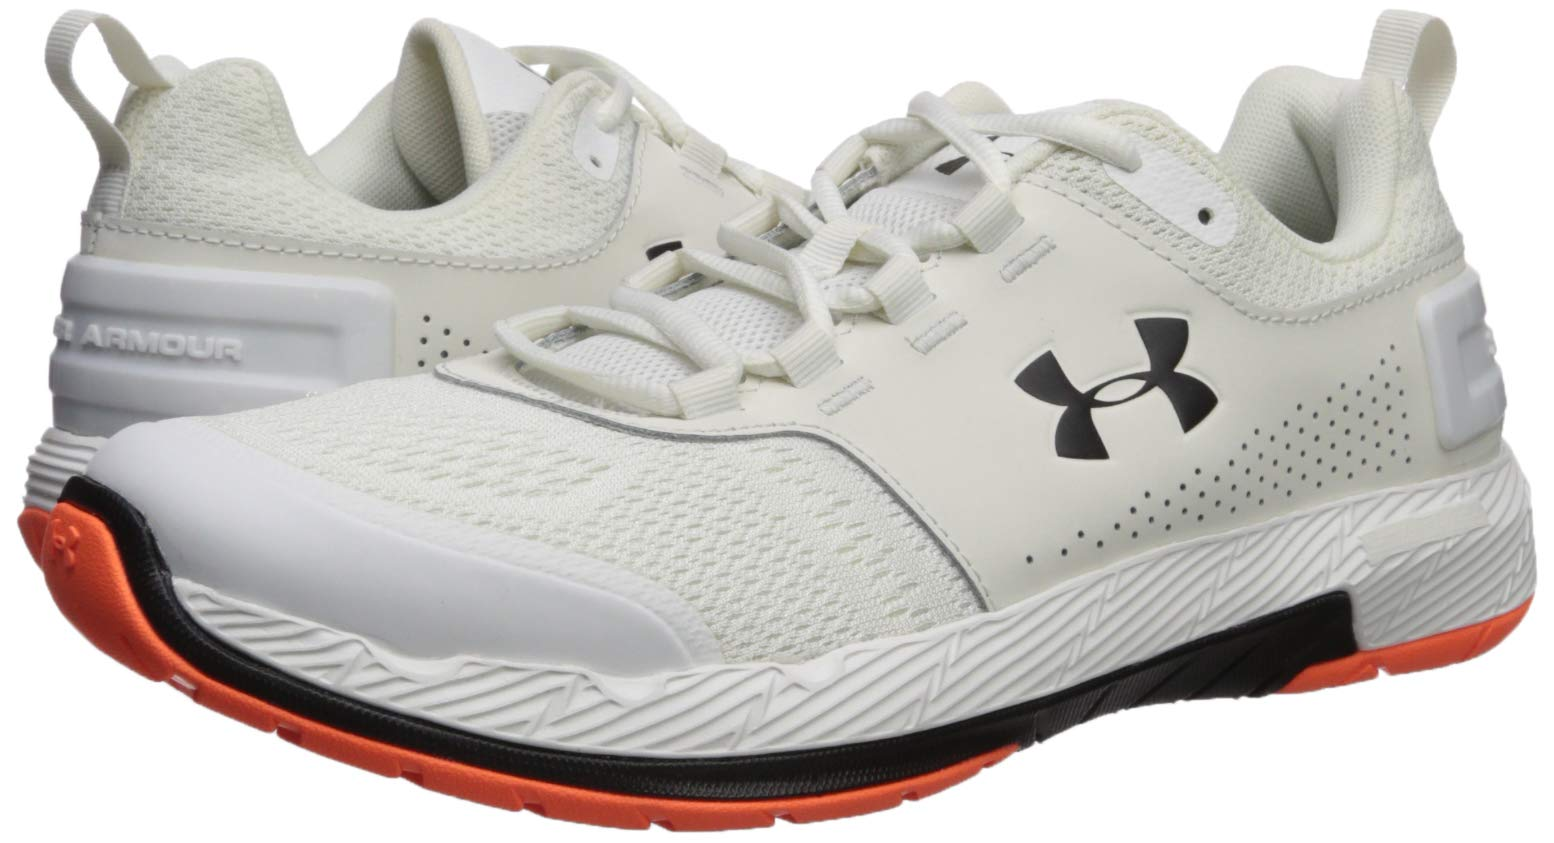 Under Armour Men's Commit TR EX Sneaker, Onyx White (108)/Black, 7 M US by Under Armour (Image #5)